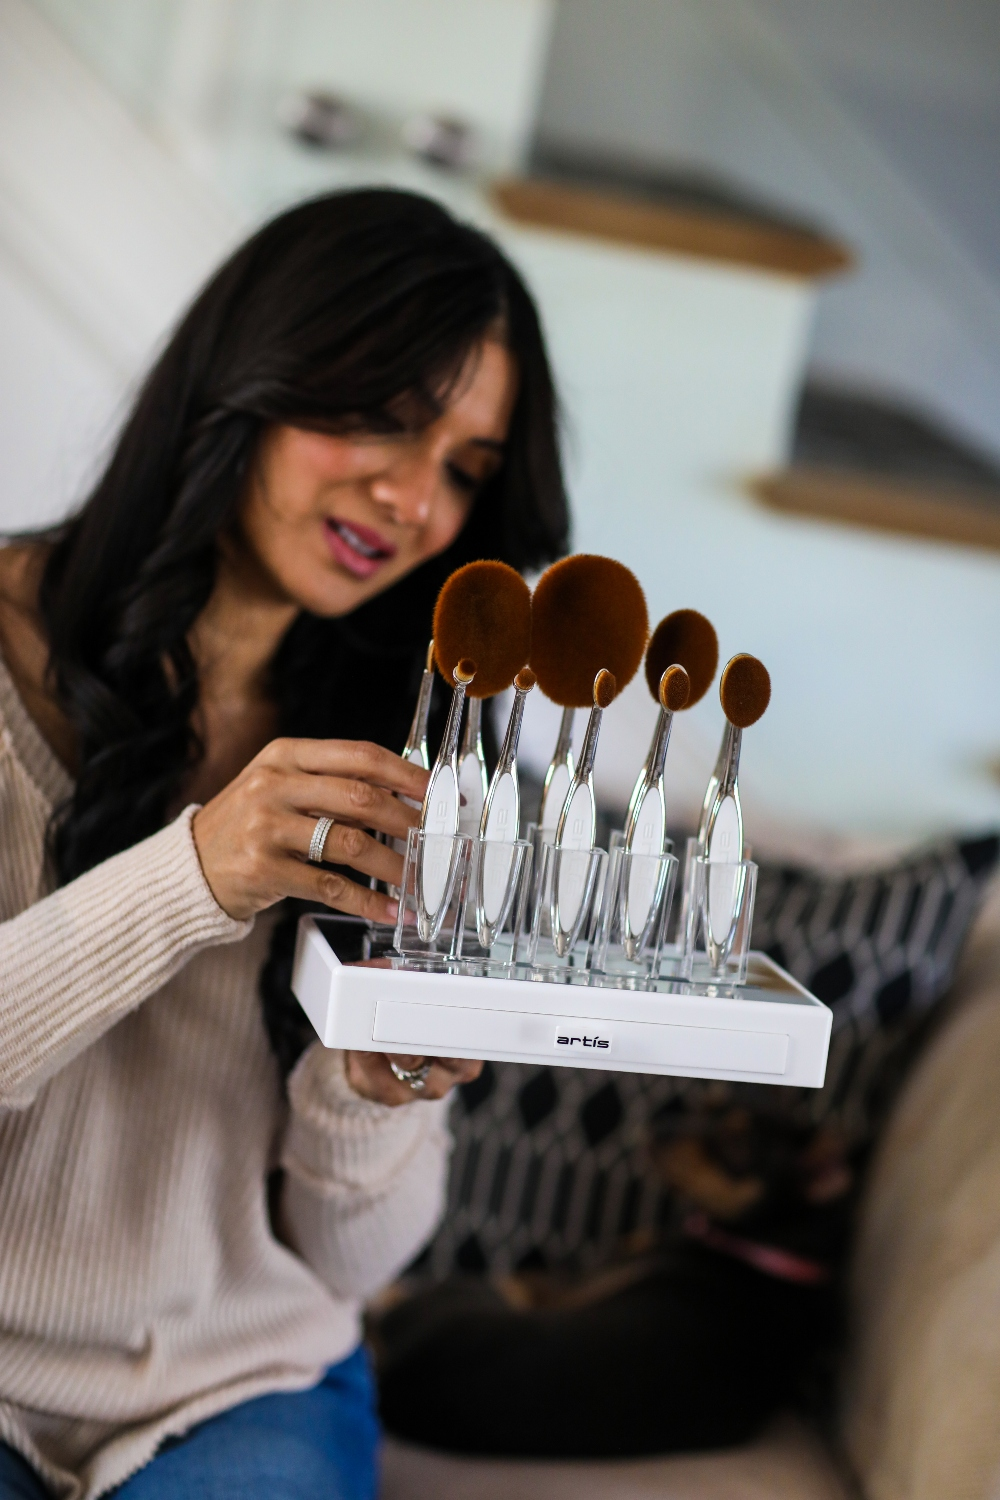 Looking for th best makeup brushes on the market? I have you covered. See what makeup brush Orange County Blogger Debbie is currenty loving here!